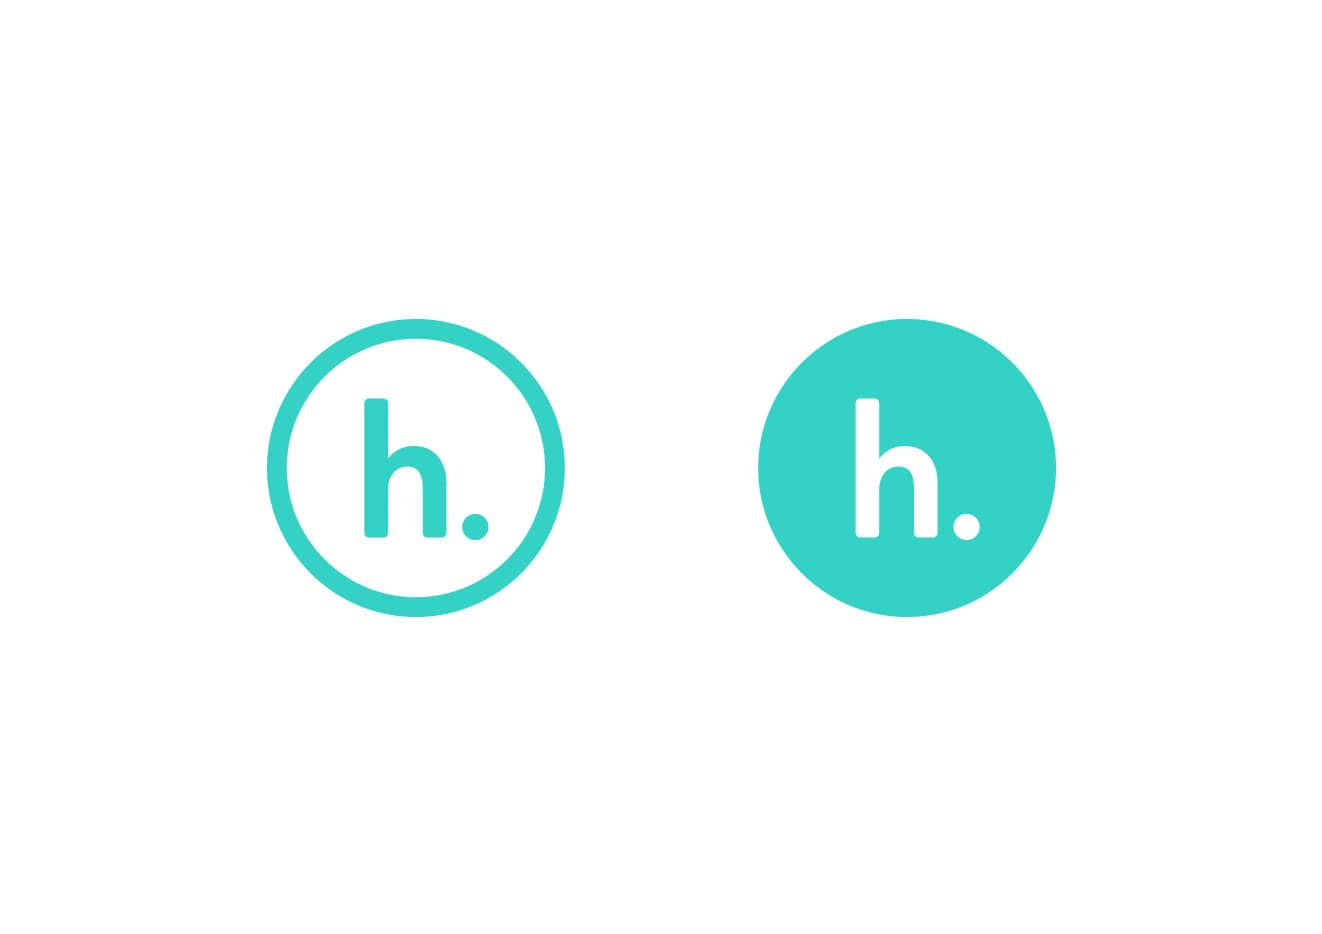 Hatched rebrand logo mark